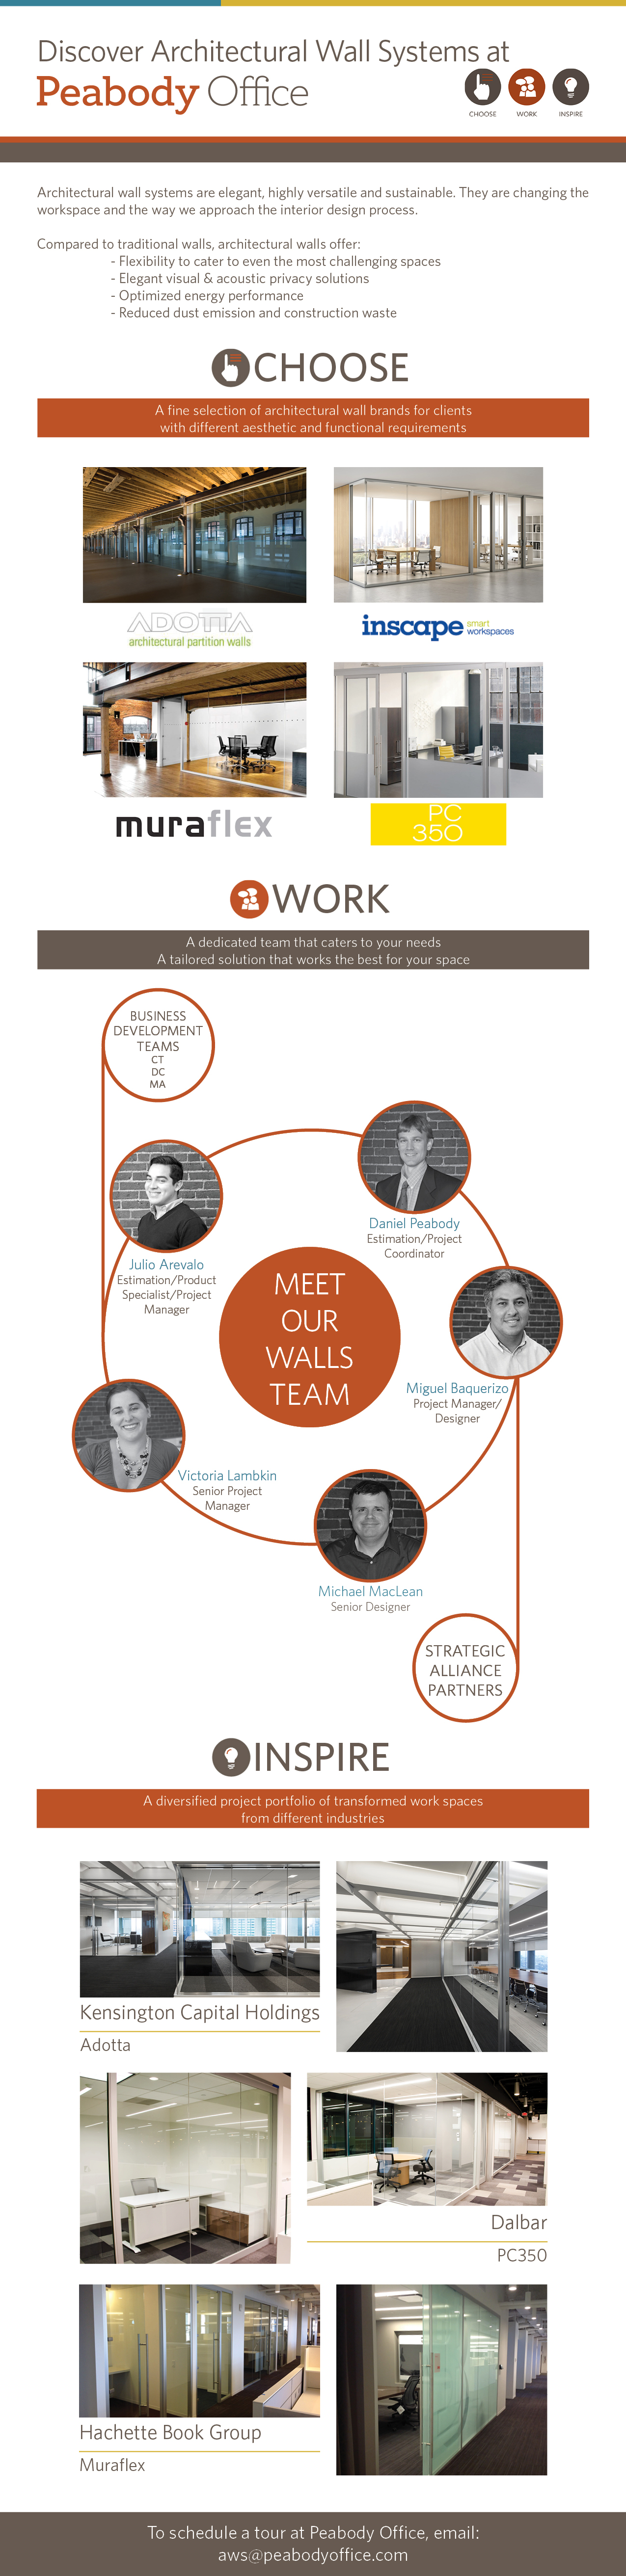 Discover Architectural Wall Systems at Peabody Office.jpg